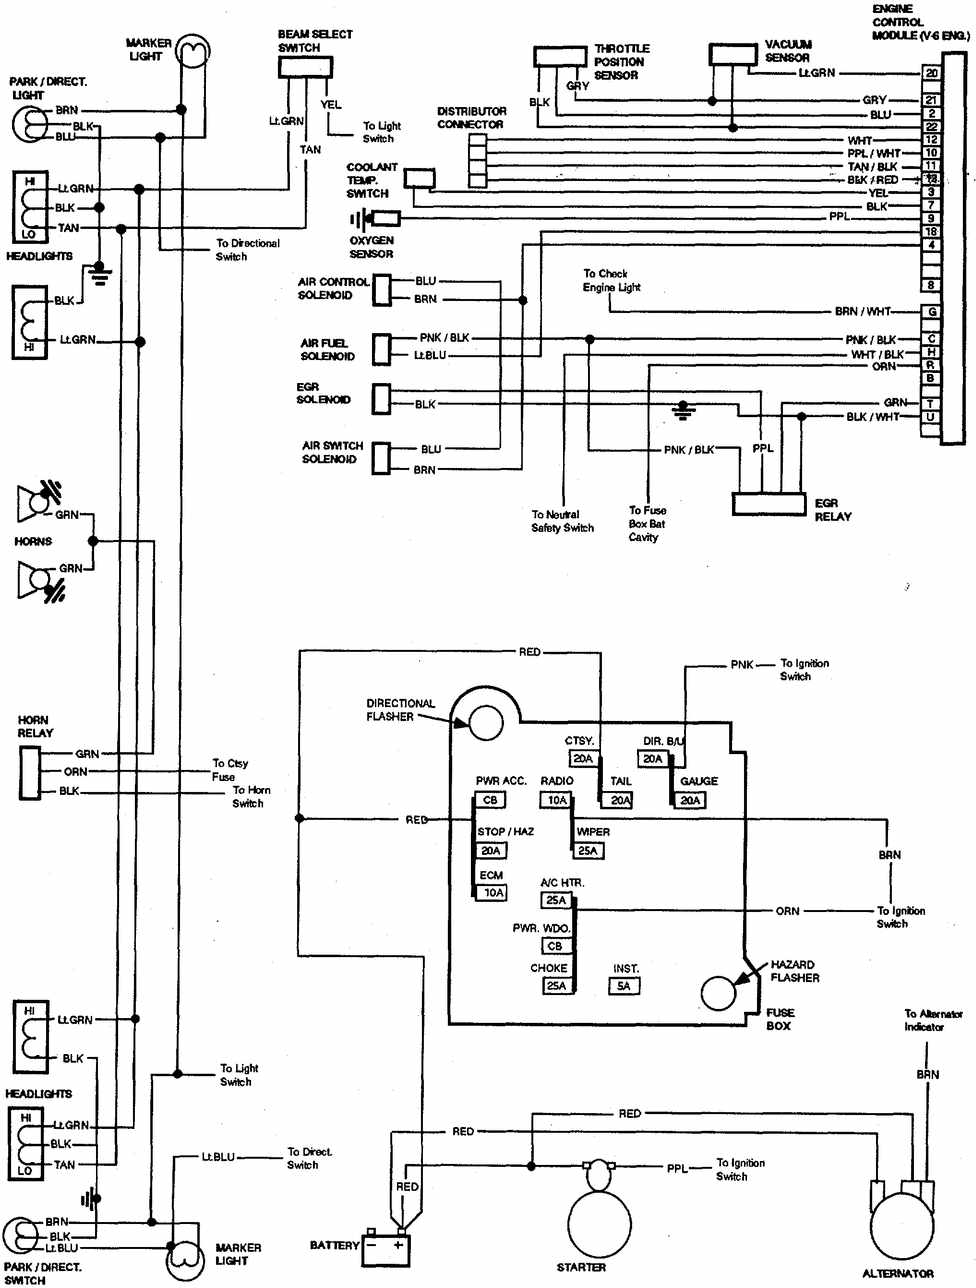 small resolution of wiring diagram 1987 el camino ss ford steering column wiring diagram1983 el camino wiring diagram wiring